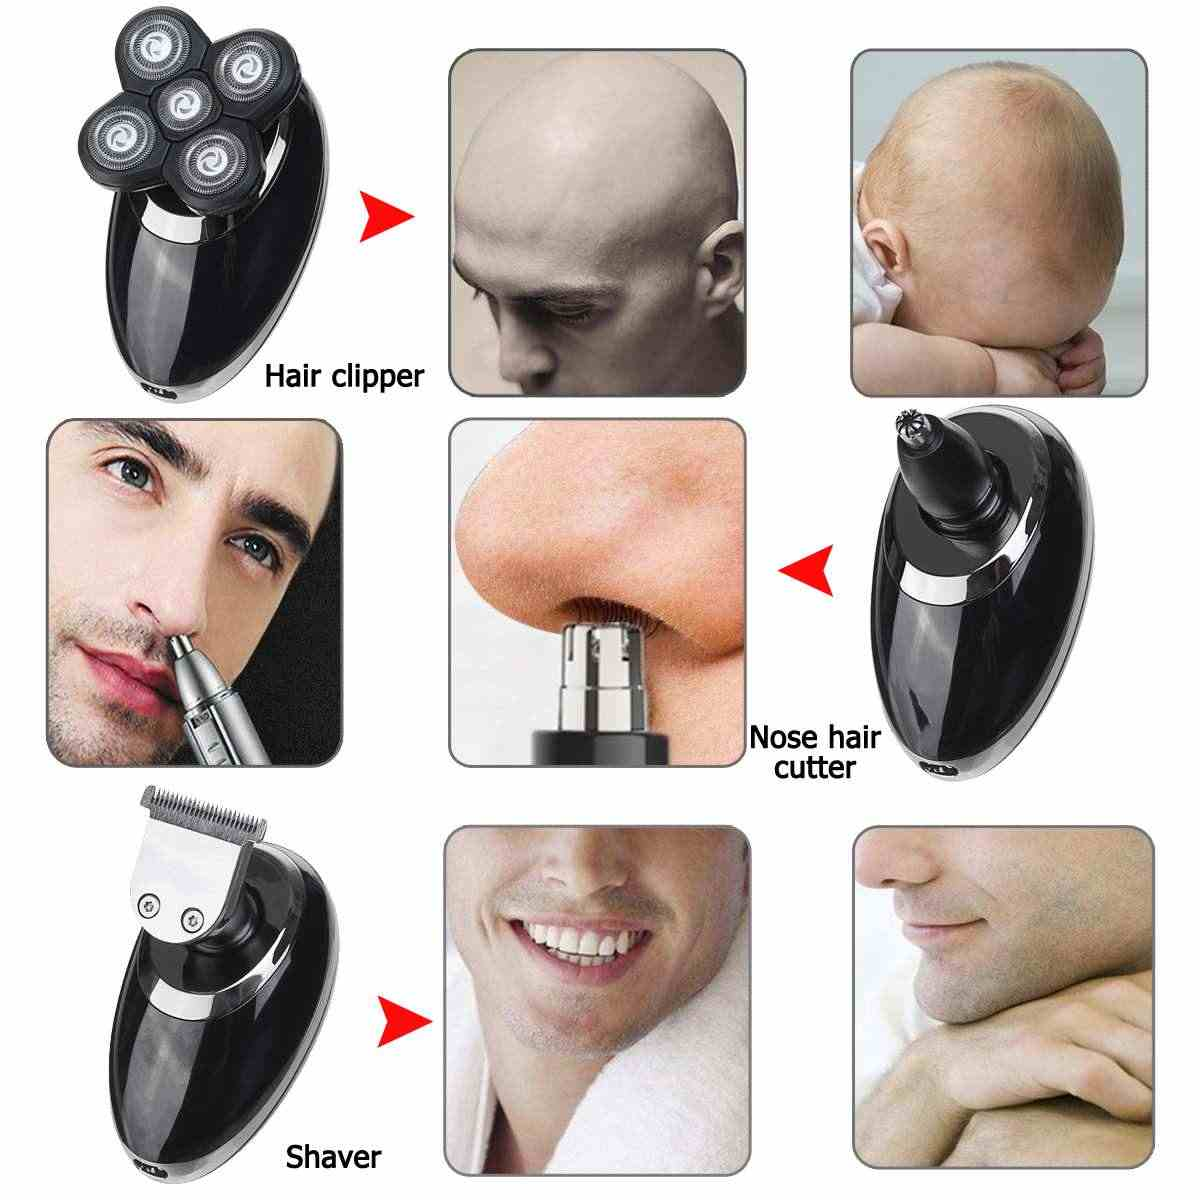 SPZ 3 in 1 USB Rechargeable Male Electric Shaver Bald Head Rotary Beard Shaver Razor Hair Trimmer Clipper Nose Grooming Kit Sets